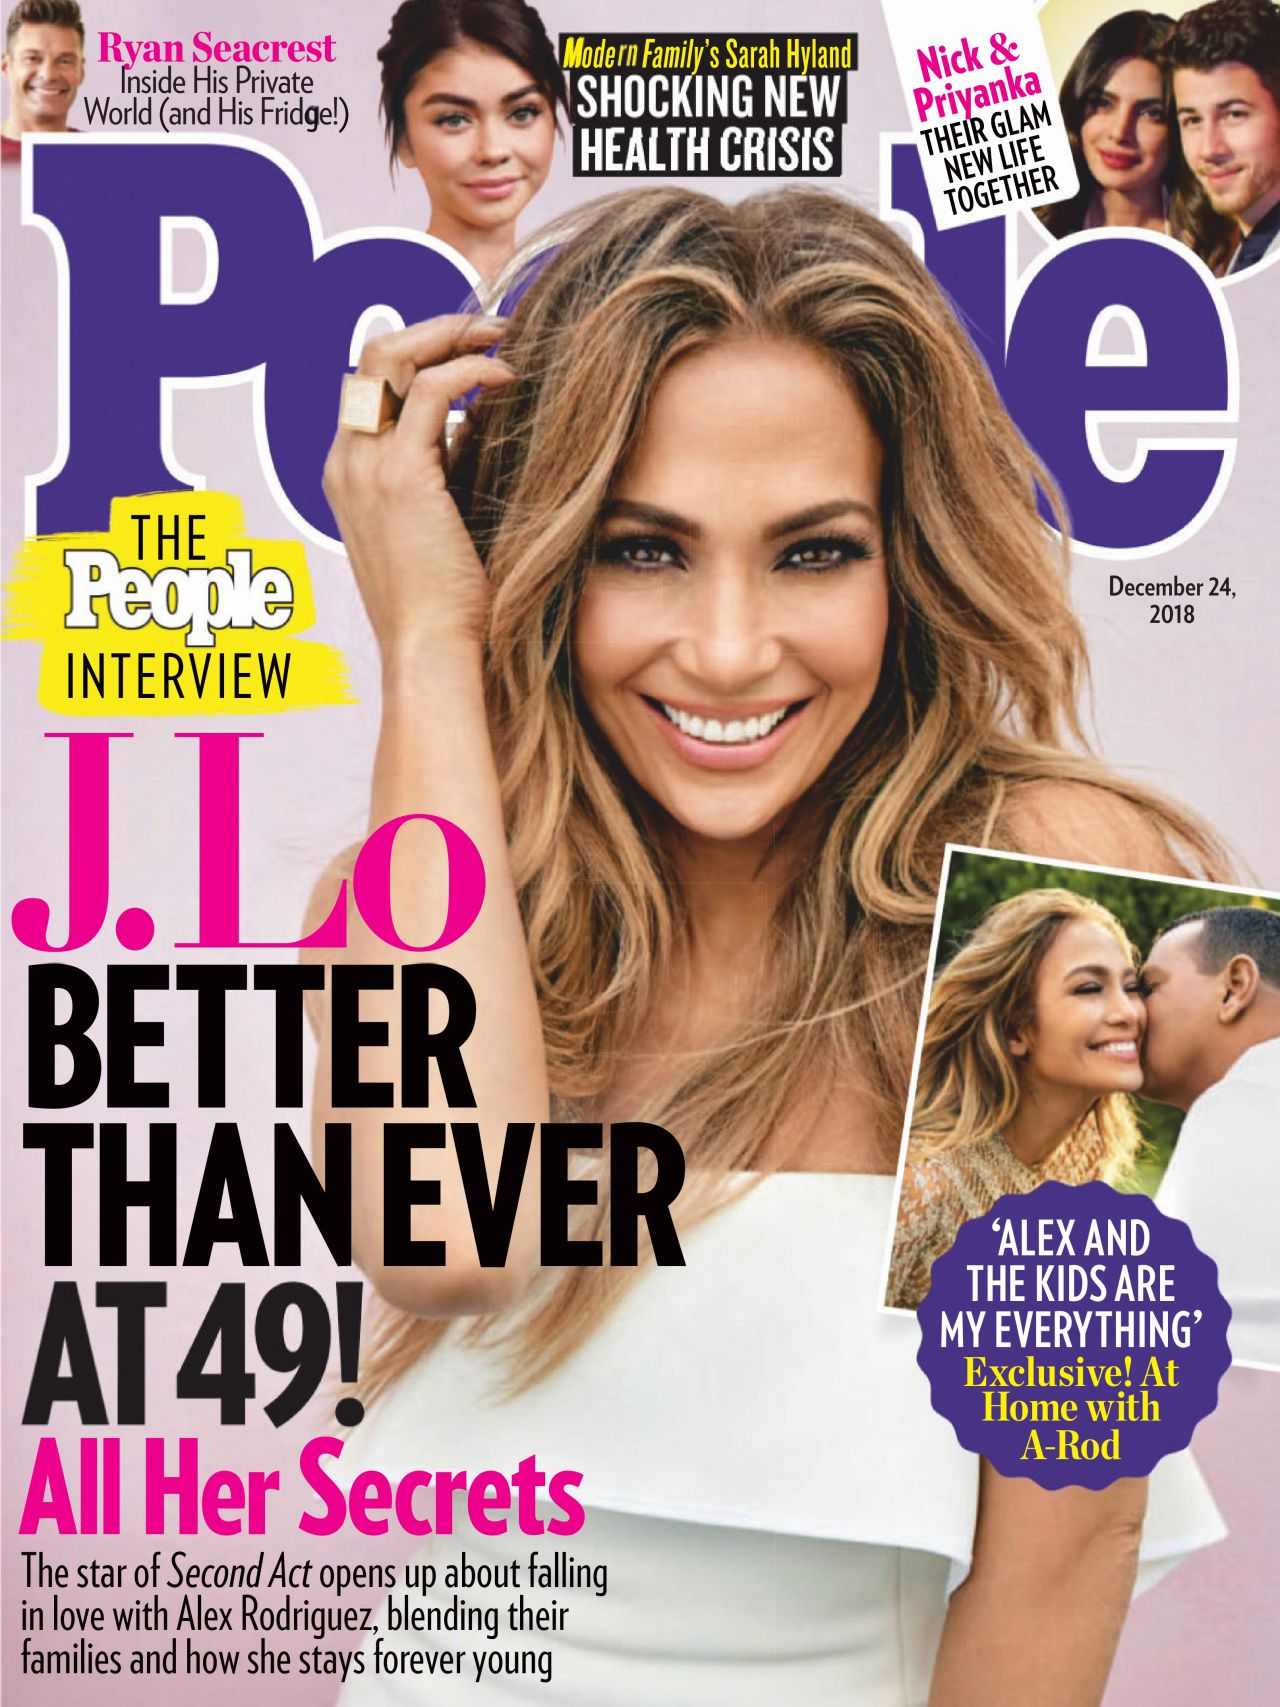 magazine jennifer lopez december issue covers latest usa alex rodriguez week blending magazines open swoon reveals quality relationship families together